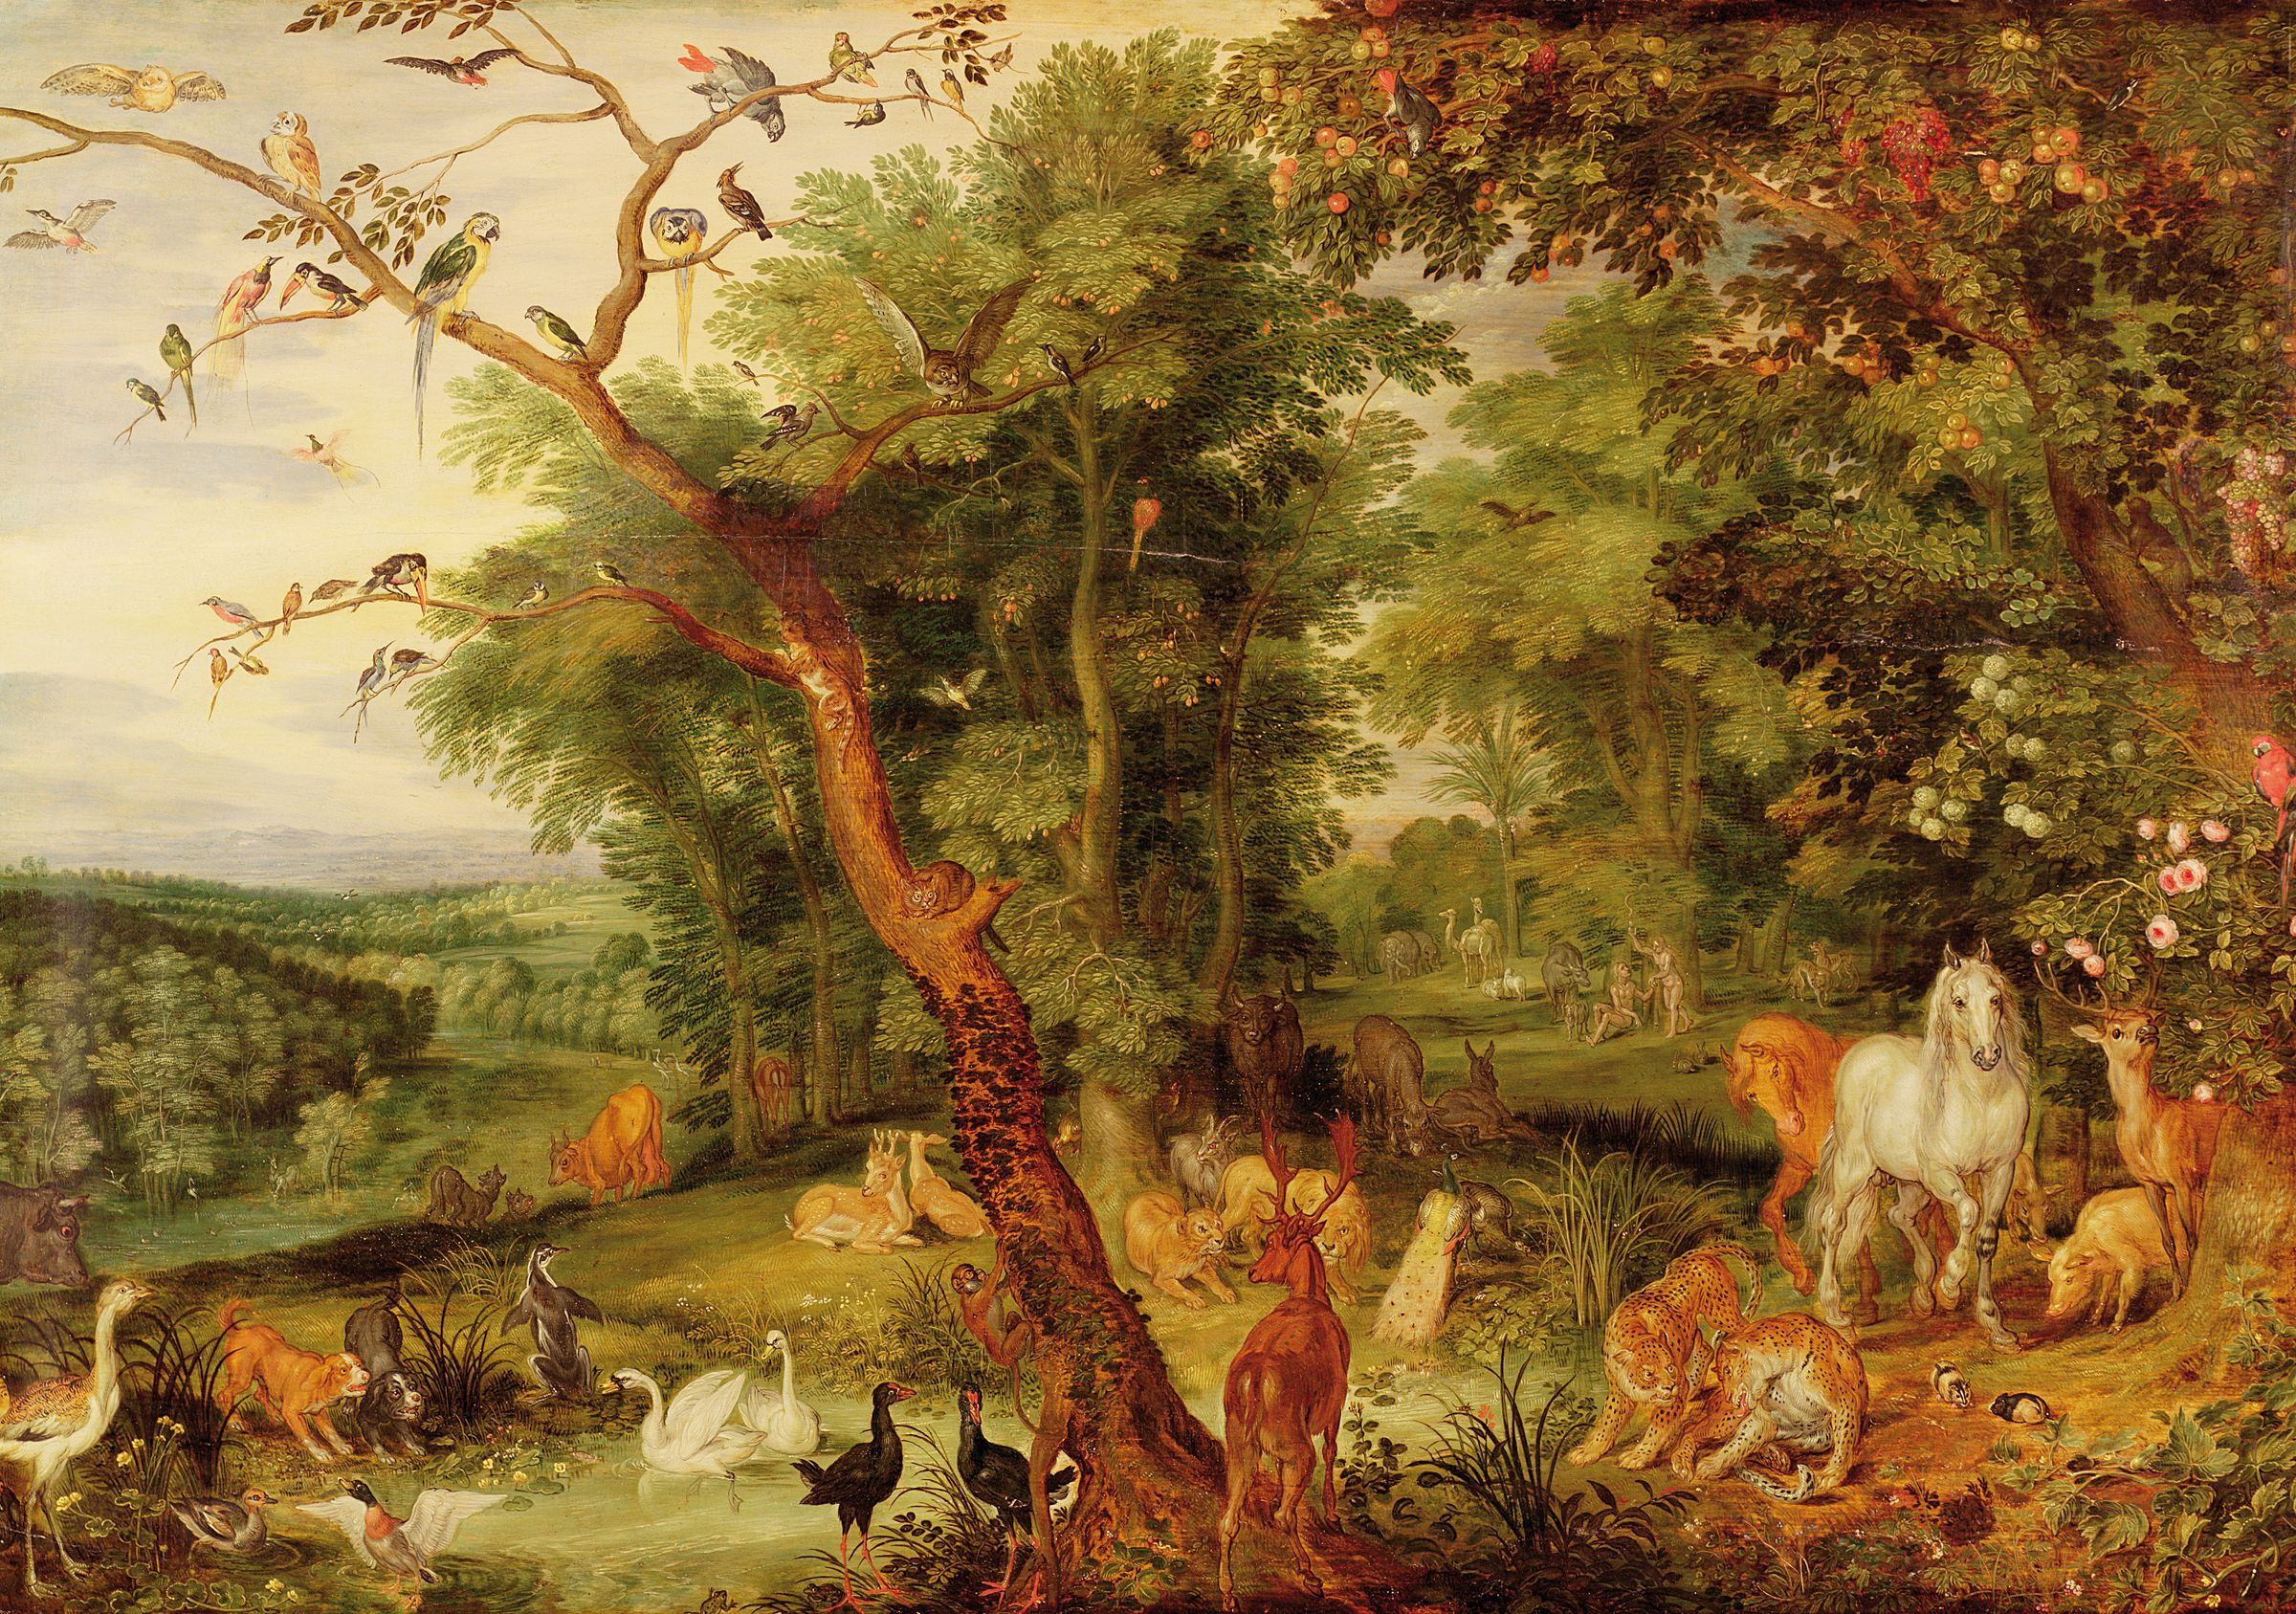 Jan Brueghel The Elder Was A Flemish Painter And Draughtsman And The Son Of The Renaissance Painter Pieter Brueghel The Elder The Garden Of Eden Art Fine Art